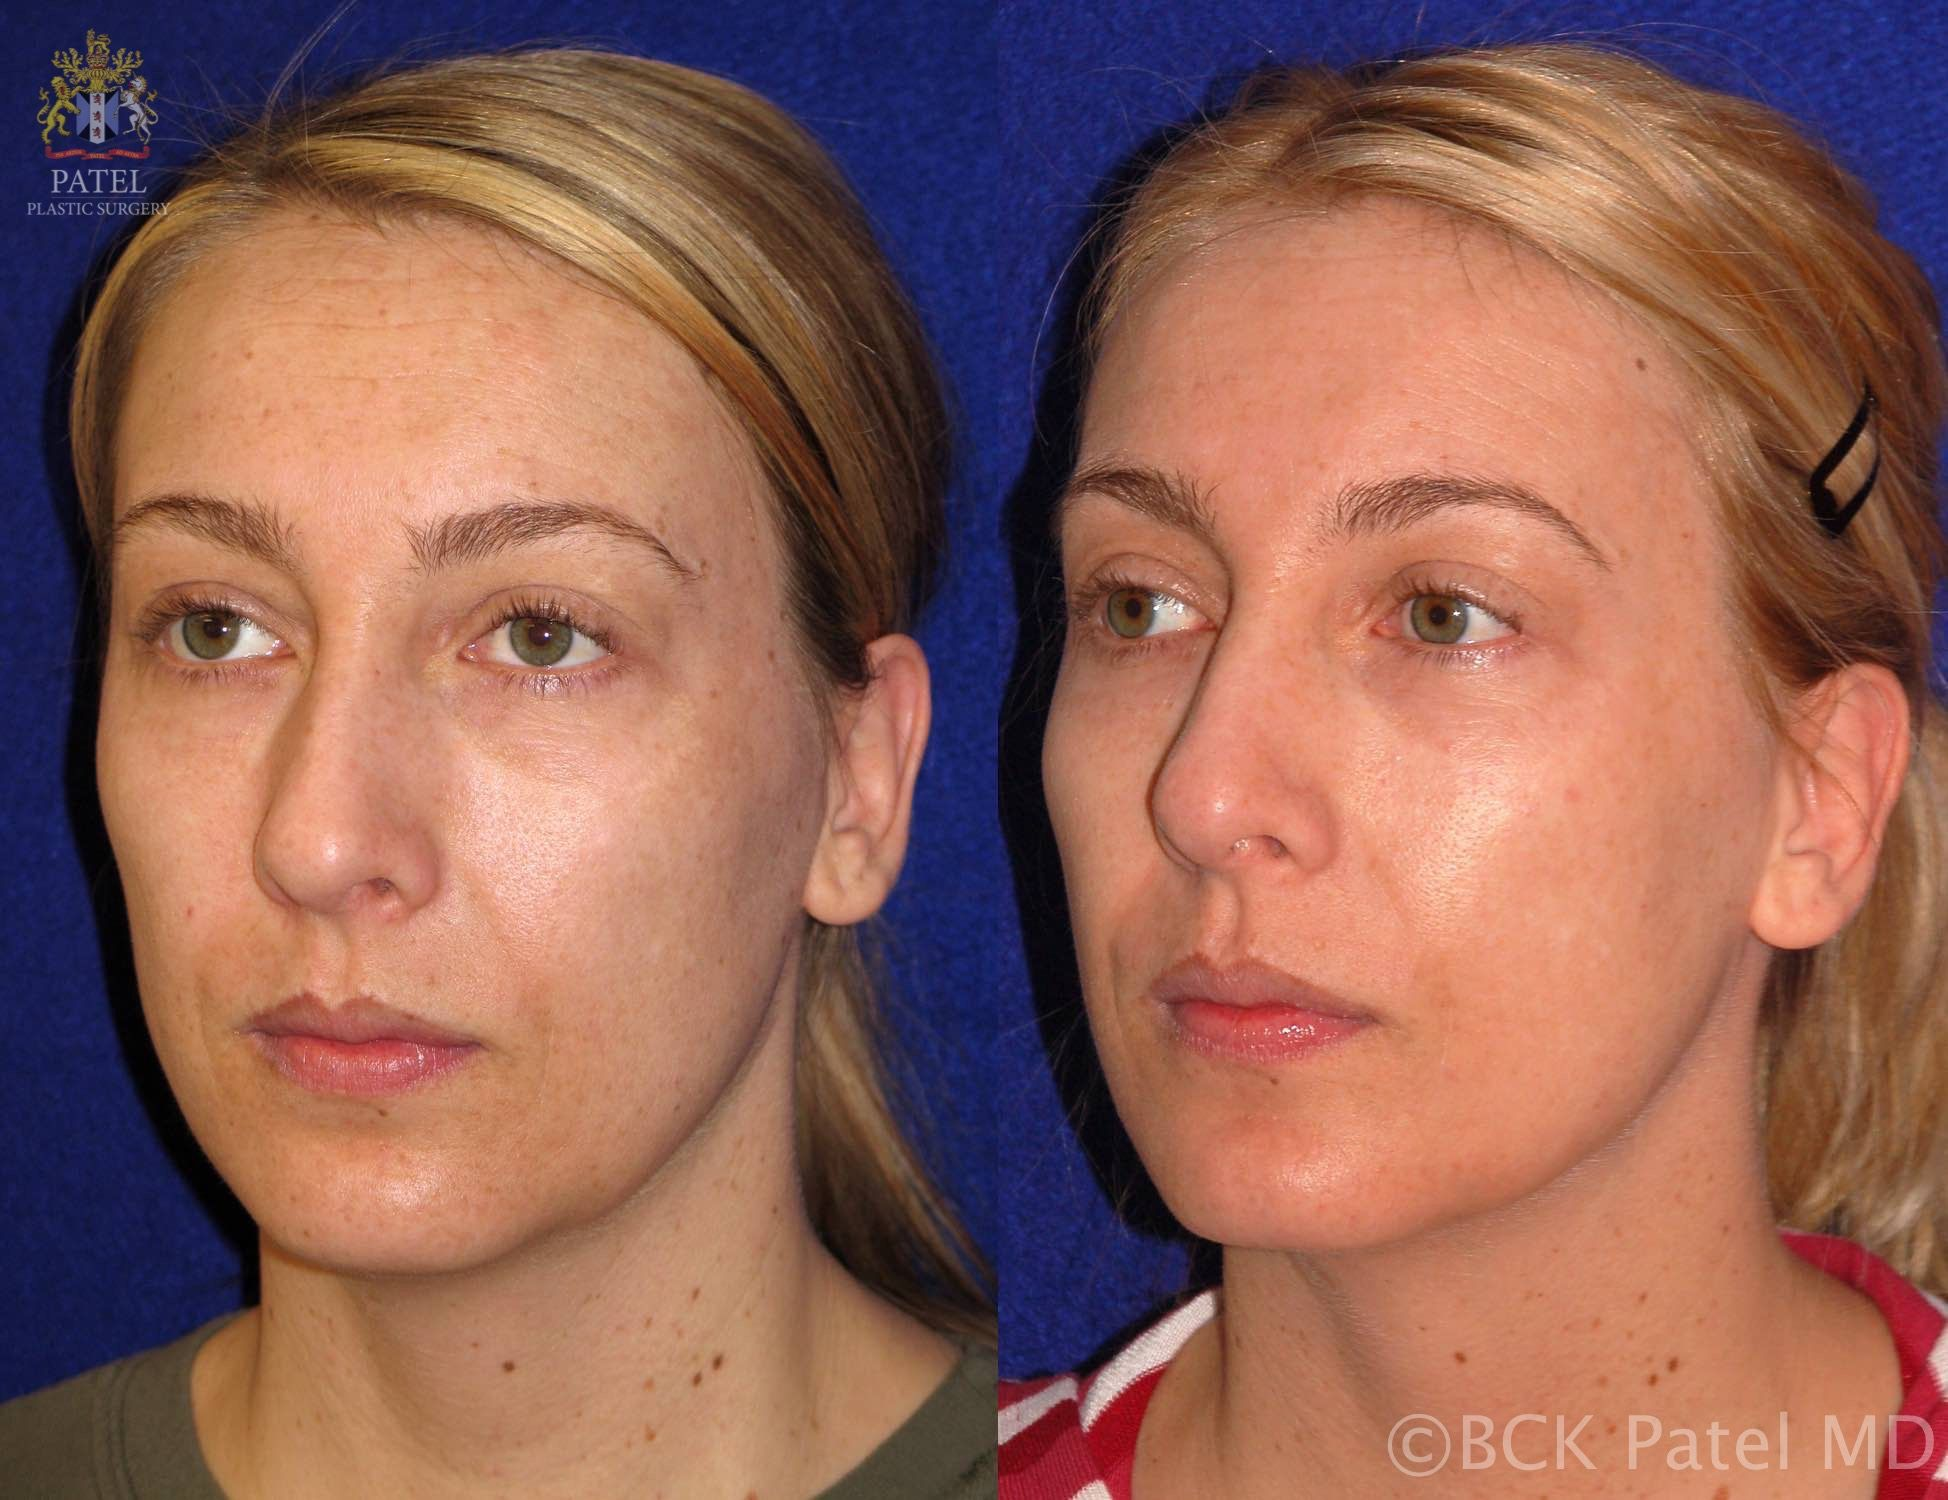 Results fo full face trichloroacetic acid chemical peels by Dr BCK Patel MD, FRCS, Salt Lake City, Utah, St George, London